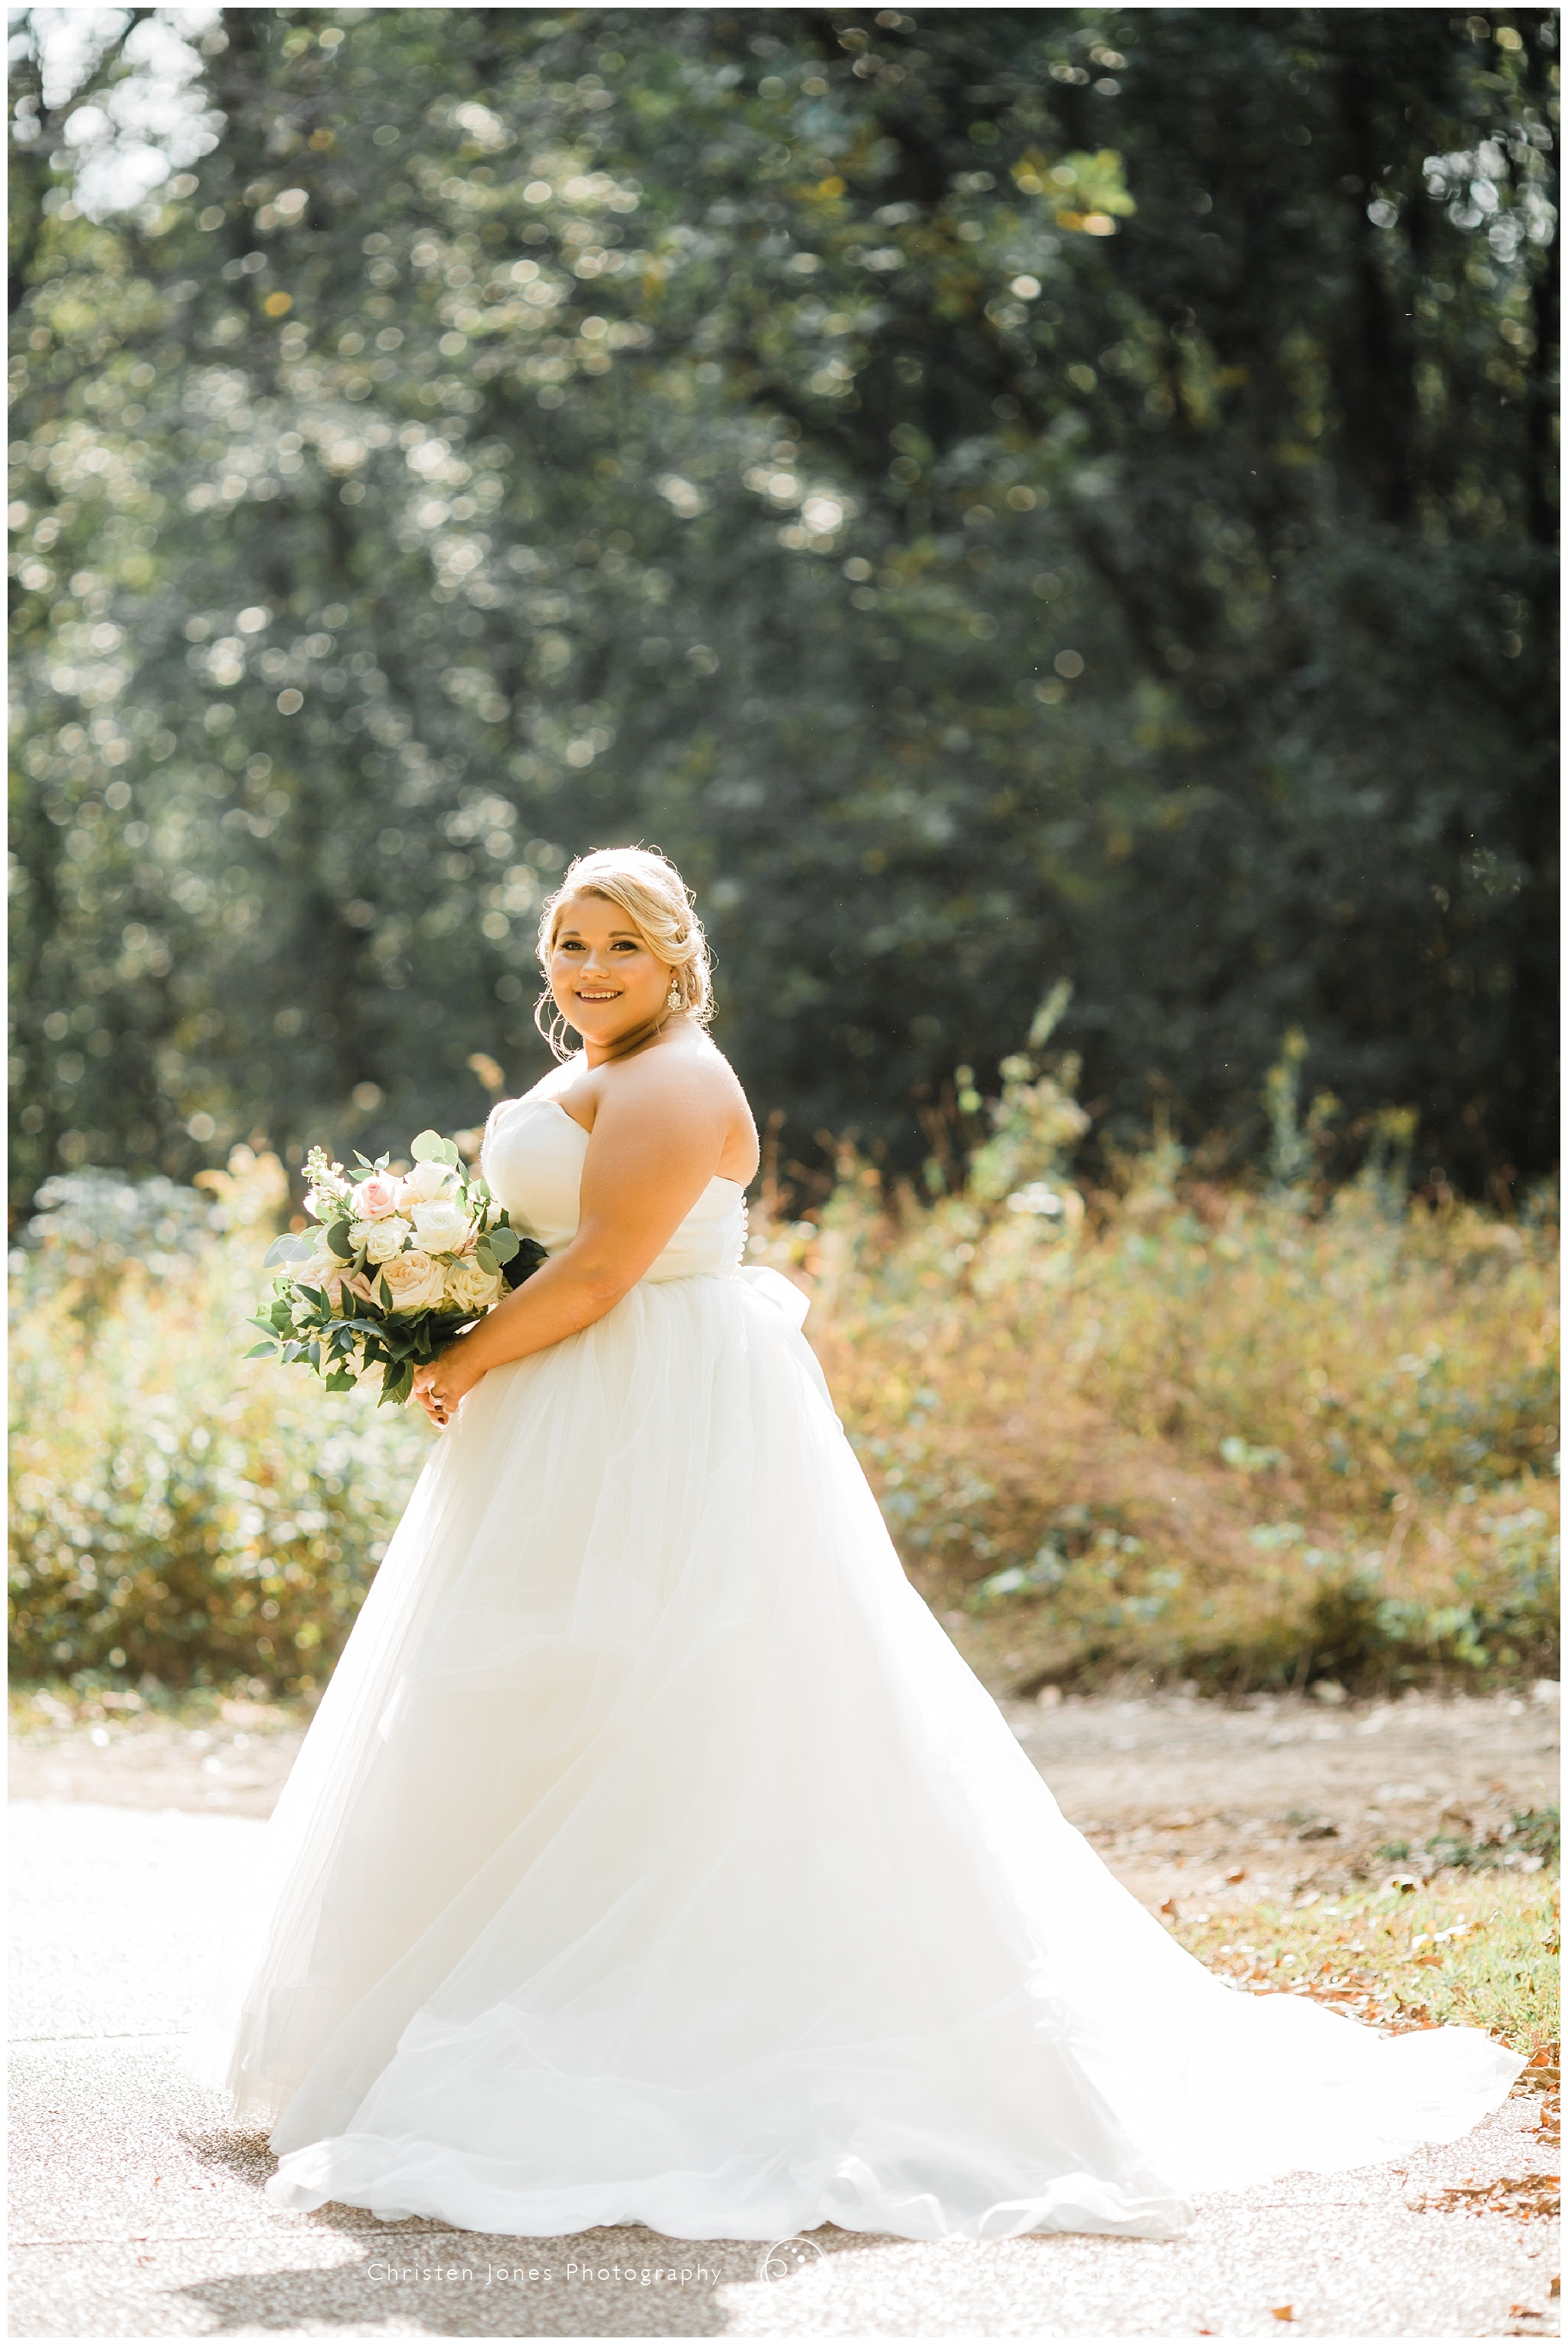 bridal,lynn doyle flowers,mad lily cakery,memphis,memphis bride,memphis wedding photography,memphs wedding,midsouth bride,midsouth wedding,spring creek ranch,tennessee wedding,wedding,